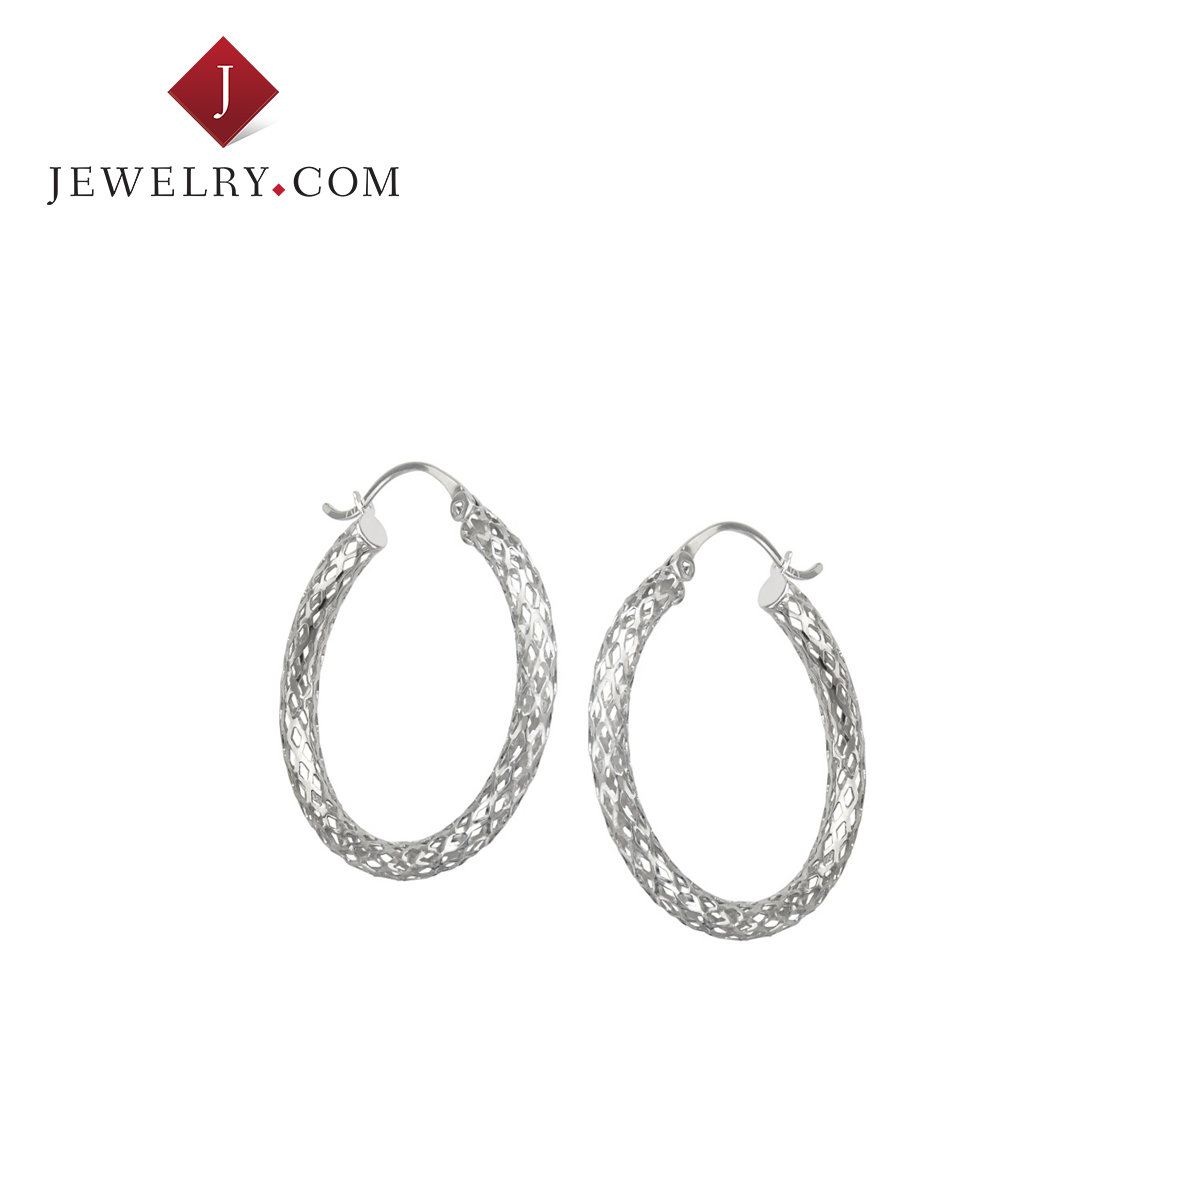 Jewelry.com official k white gold twist chain ms. classic stylish atmosphere earrings creative new